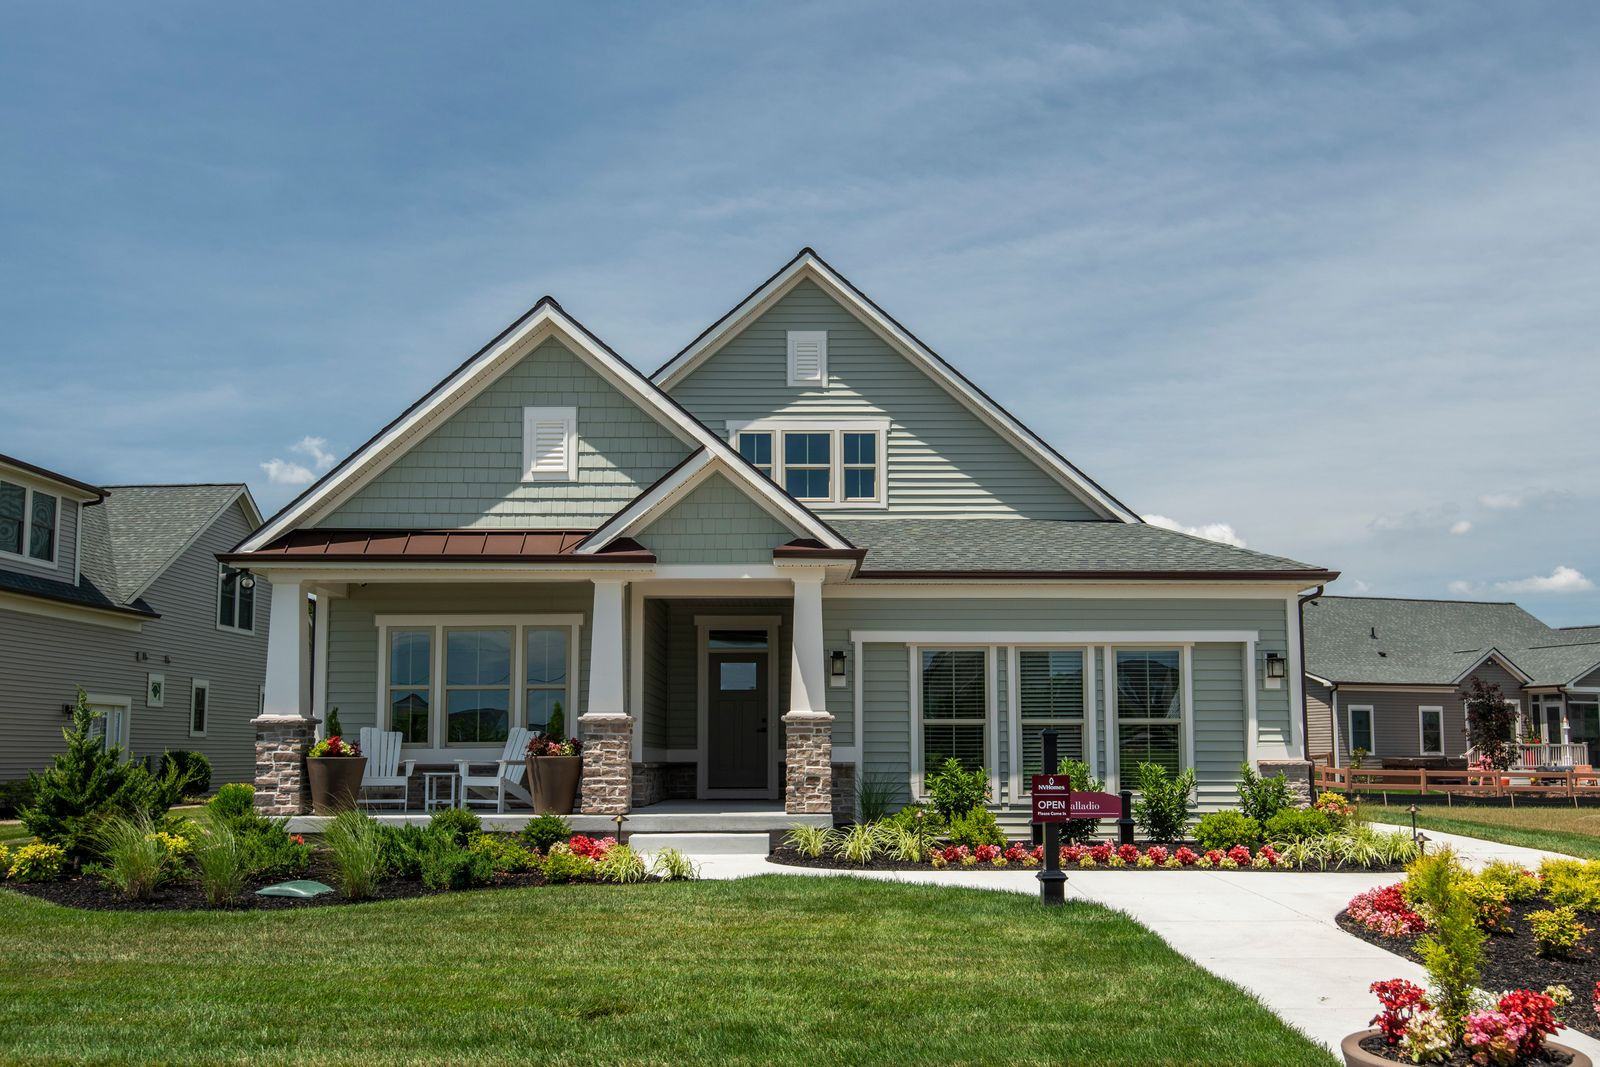 Ranches & 1st floor owner's suite floorplans at Willow Brook Farm